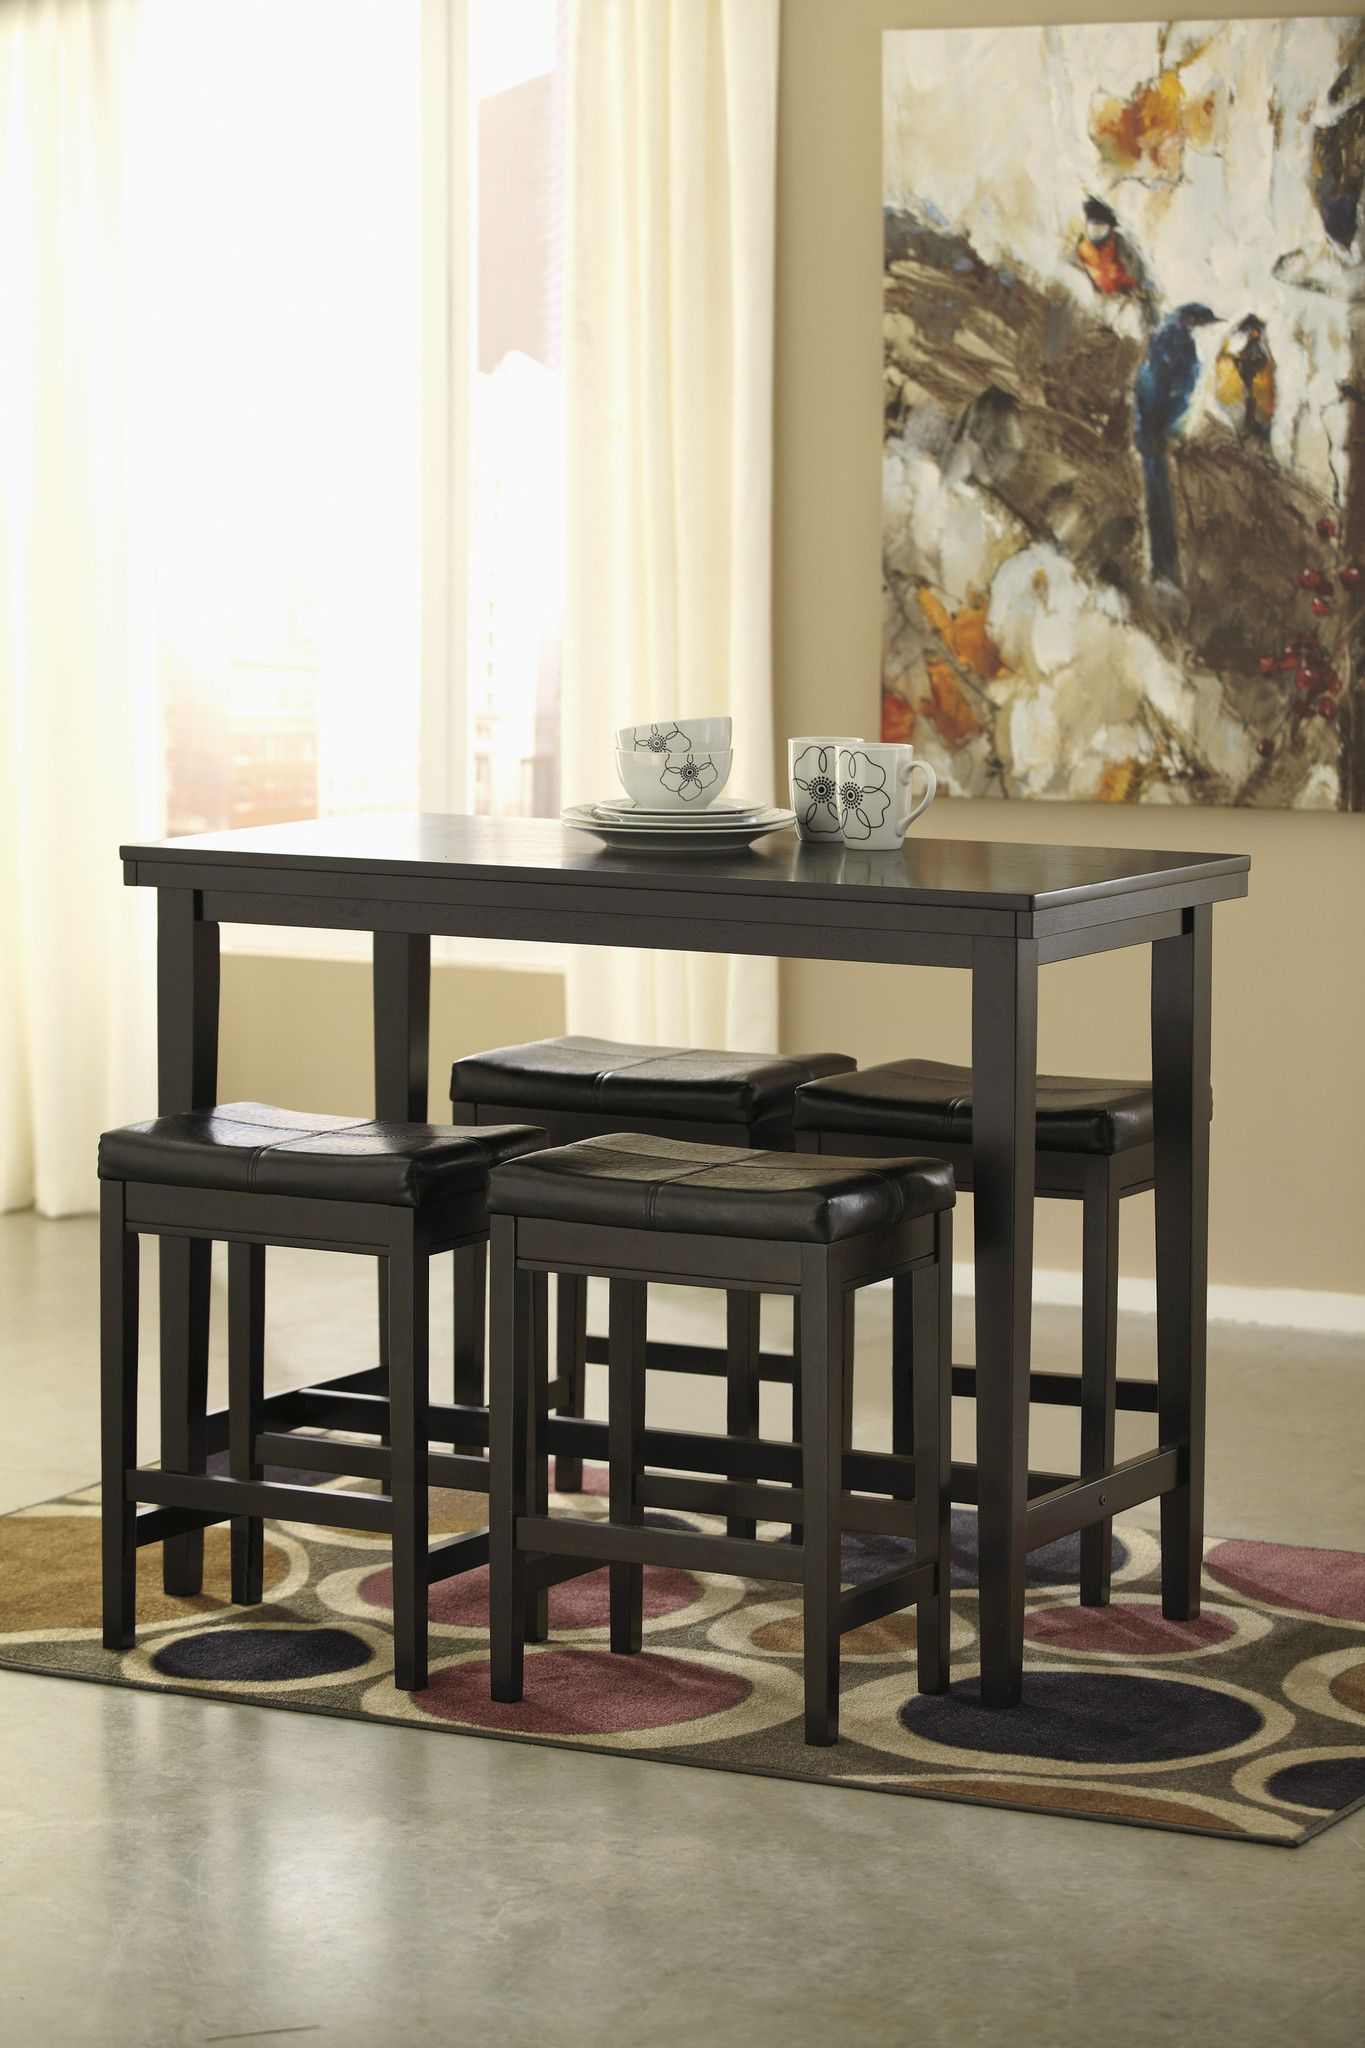 Ashley Furniture Kimonte 5 Piece Black Counter Dining Set | Jacks Throughout Current Hood Canal 3 Piece Dining Sets (Image 2 of 20)